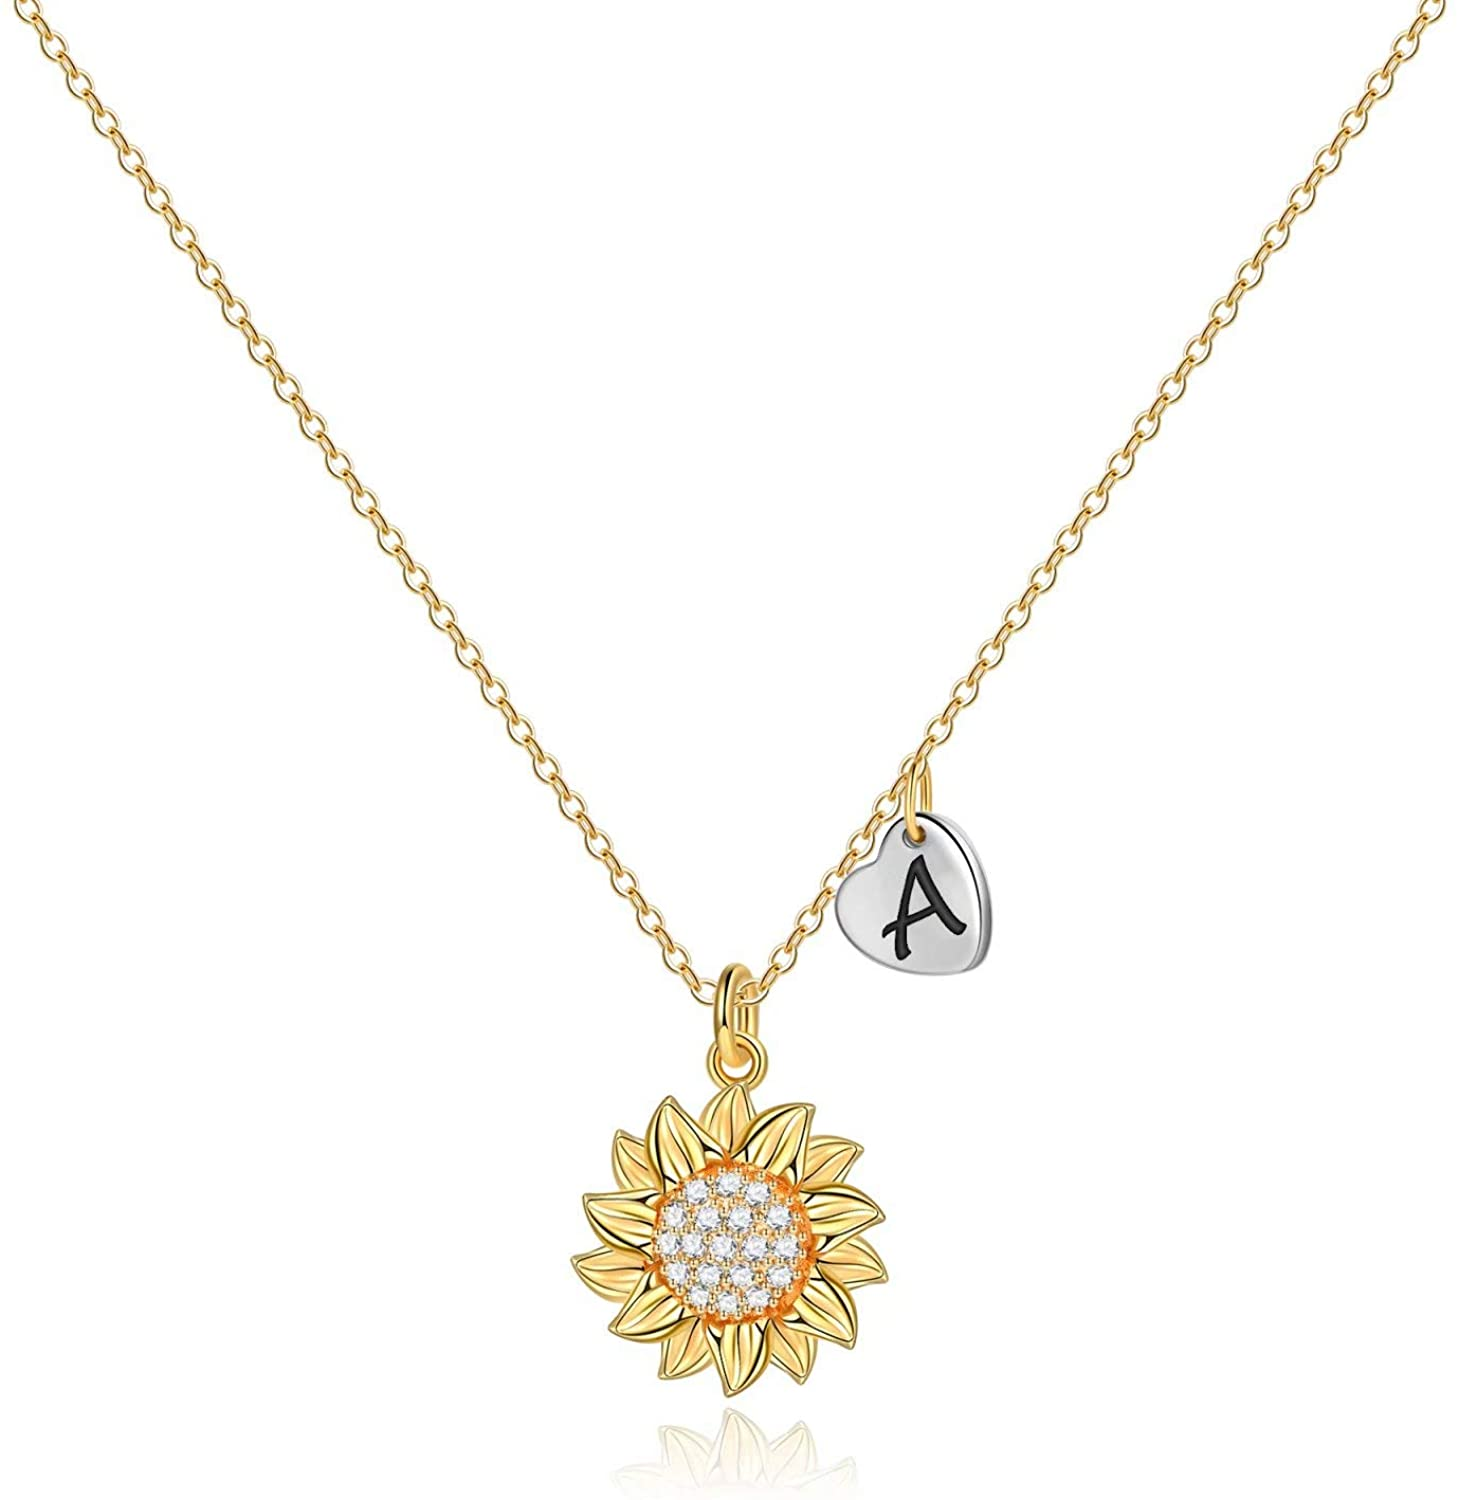 MONOOC Sunflower Necklace for Women Girls, 14k Gold Plated Initial Sunflower Pendant Necklace Jewelry Gifts Dainty You are My Sunshine Letter Initial Necklaces for Women